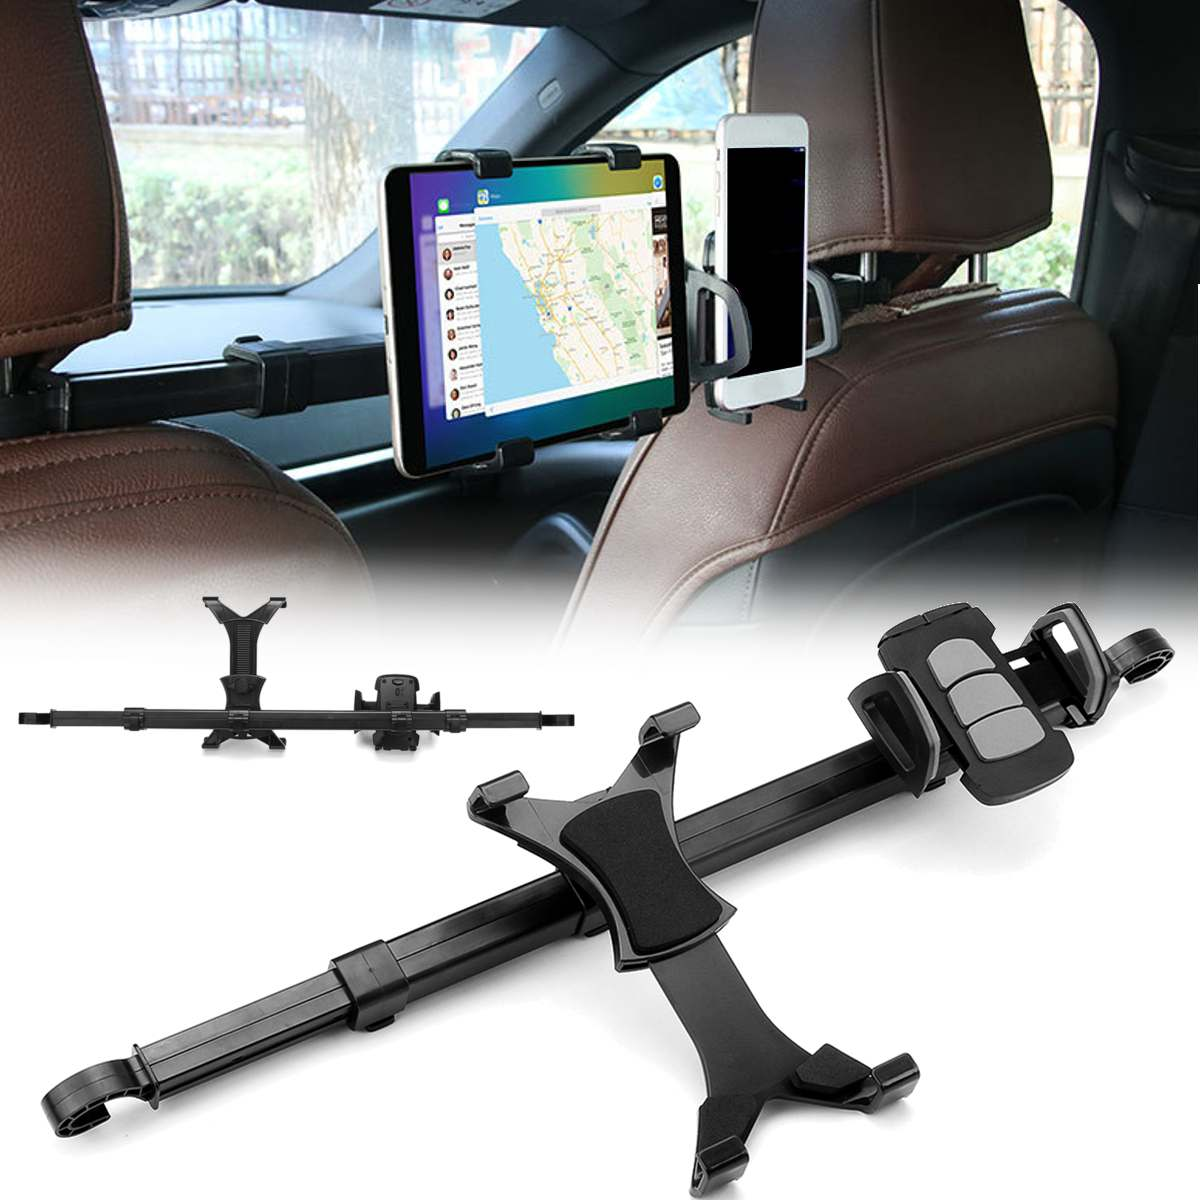 360 Degree Rotating Bracket Car Back Seat Headrest Mount Holder Tablet Pad Smart Phone Extendable Storage Stands Car Game Rack360 Degree Rotating Bracket Car Back Seat Headrest Mount Holder Tablet Pad Smart Phone Extendable Storage Stands Car Game Rack